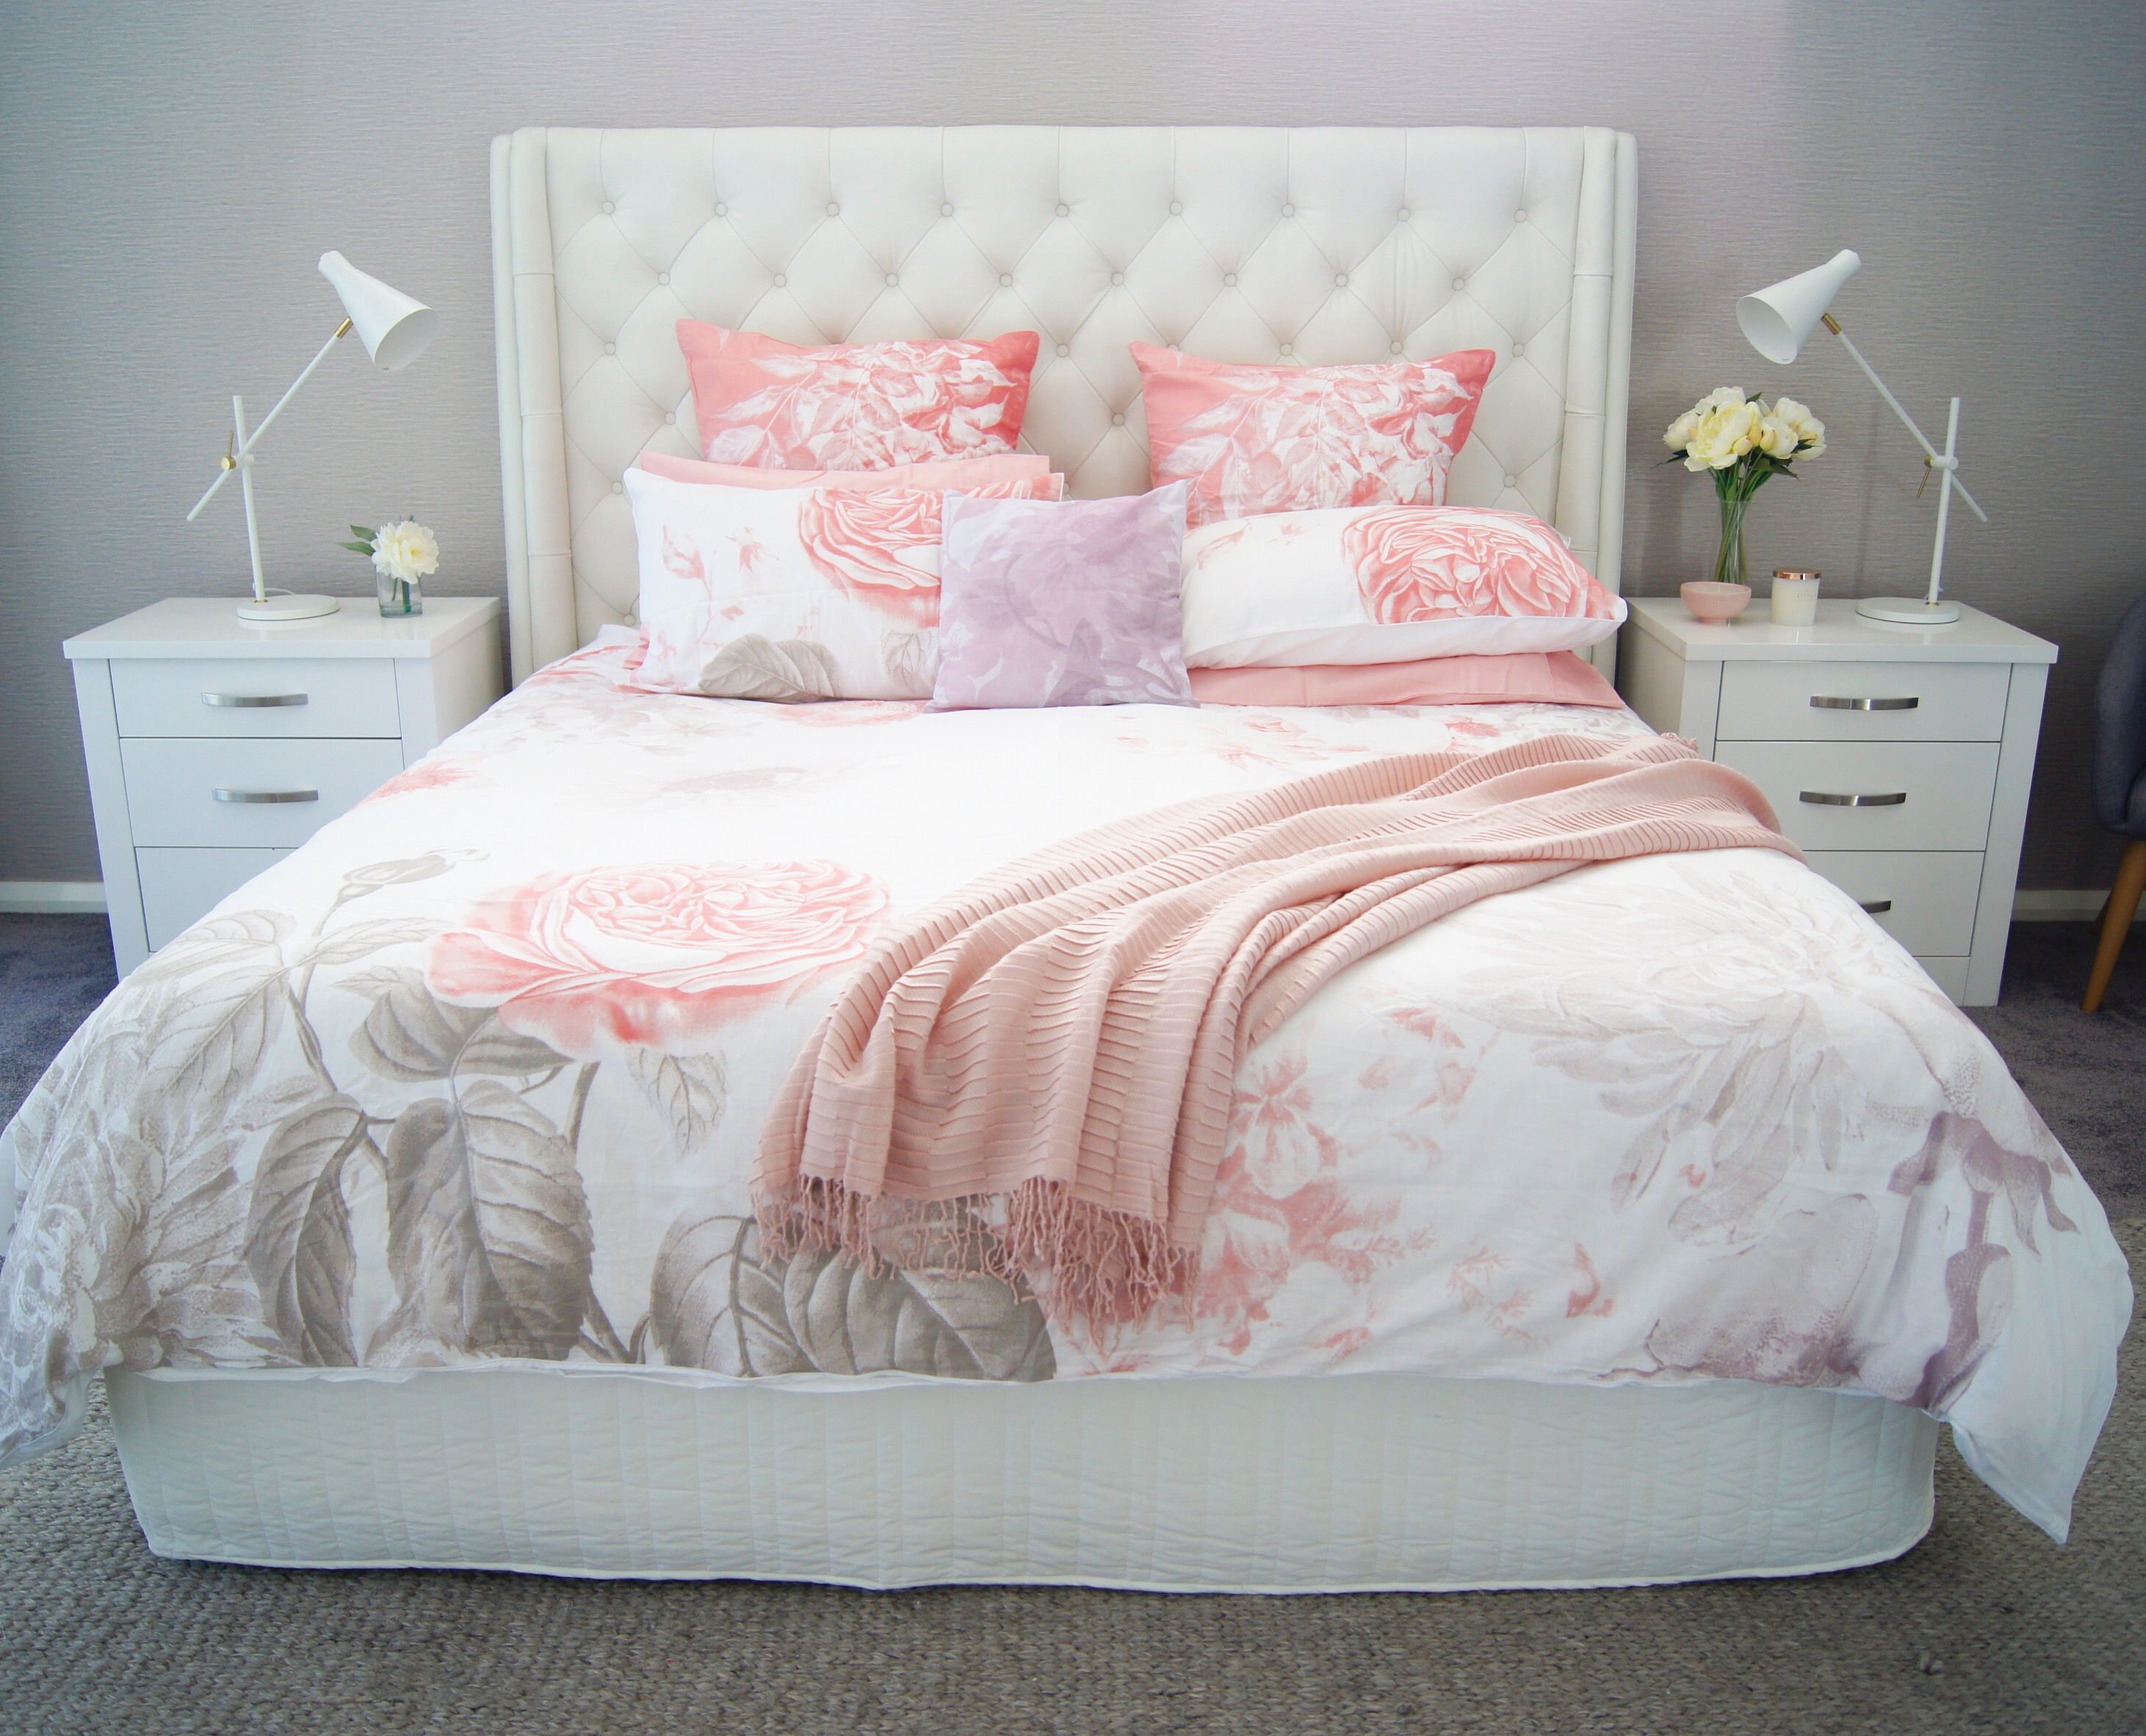 it changed the look of the room in an instant i am loving the soft and feminine feel it gives to my master bedroom my husband doesnu0027t have much input on